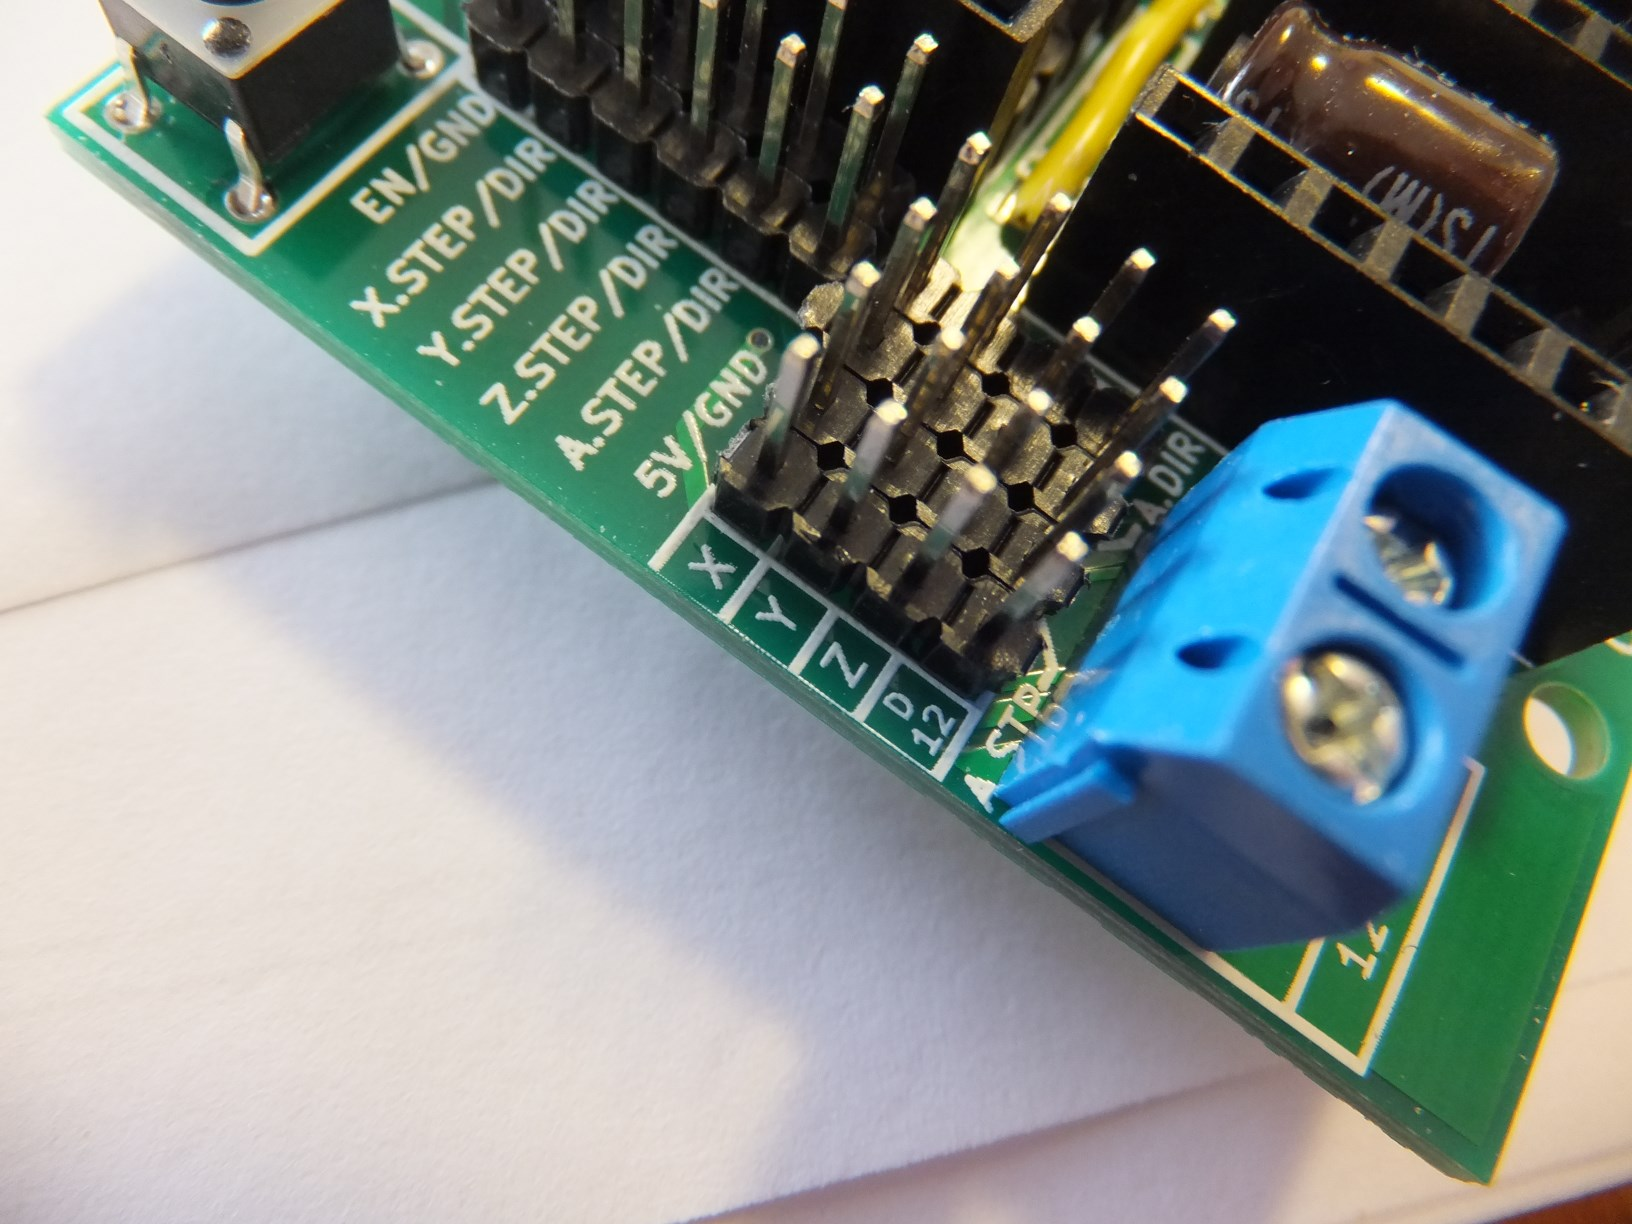 Arduino Cnc Shield 100 Grbl Compatable Protoneerconz Pcb For Cut 60 Plasma Cutter Circuit Board Pc Ac 220v We Have Designed The To Use All Pins That Implemented Also Added A Few Extra Make Things Little Easier